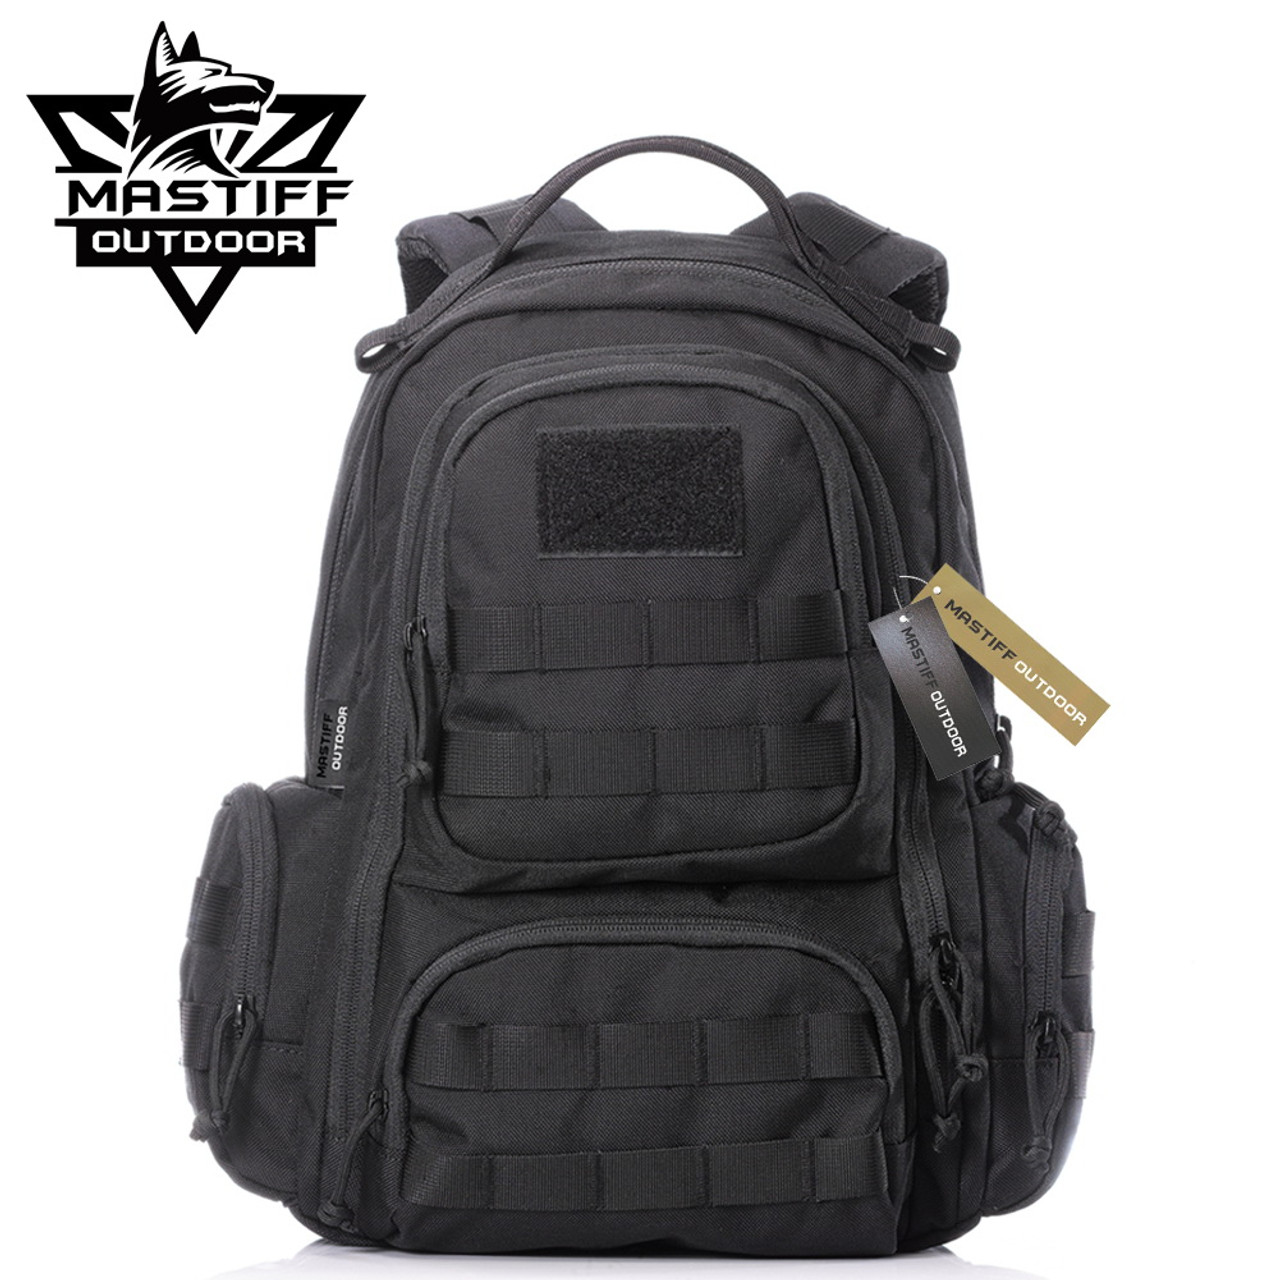 2a1d6f75d06 Mastiff Outdoor Tactical EDC Backpack 1000D Nylon MOLLE Military Gear  Dayruck - Sword N Armory